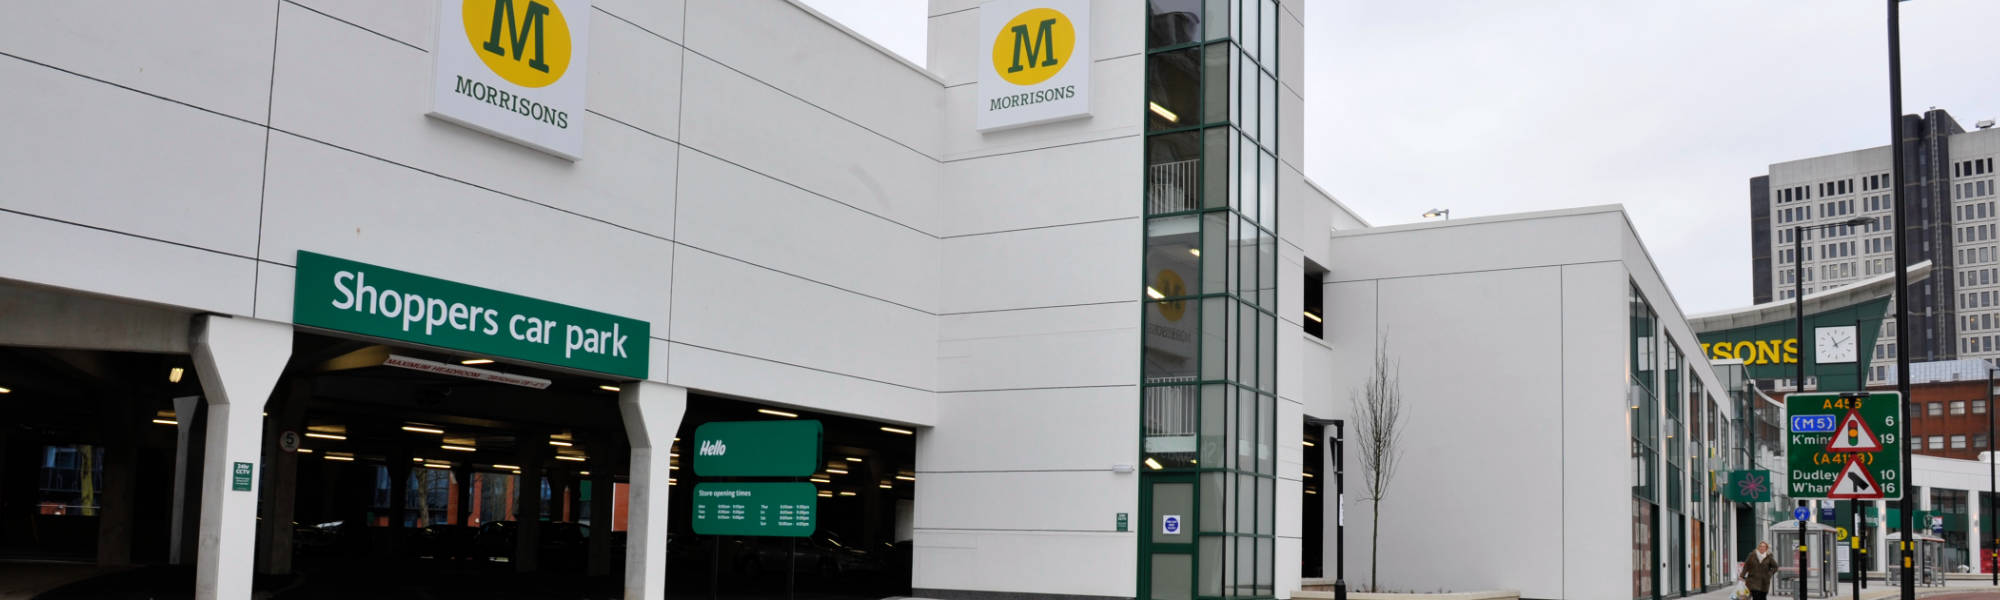 PCEs Morrisons supermarket car park project